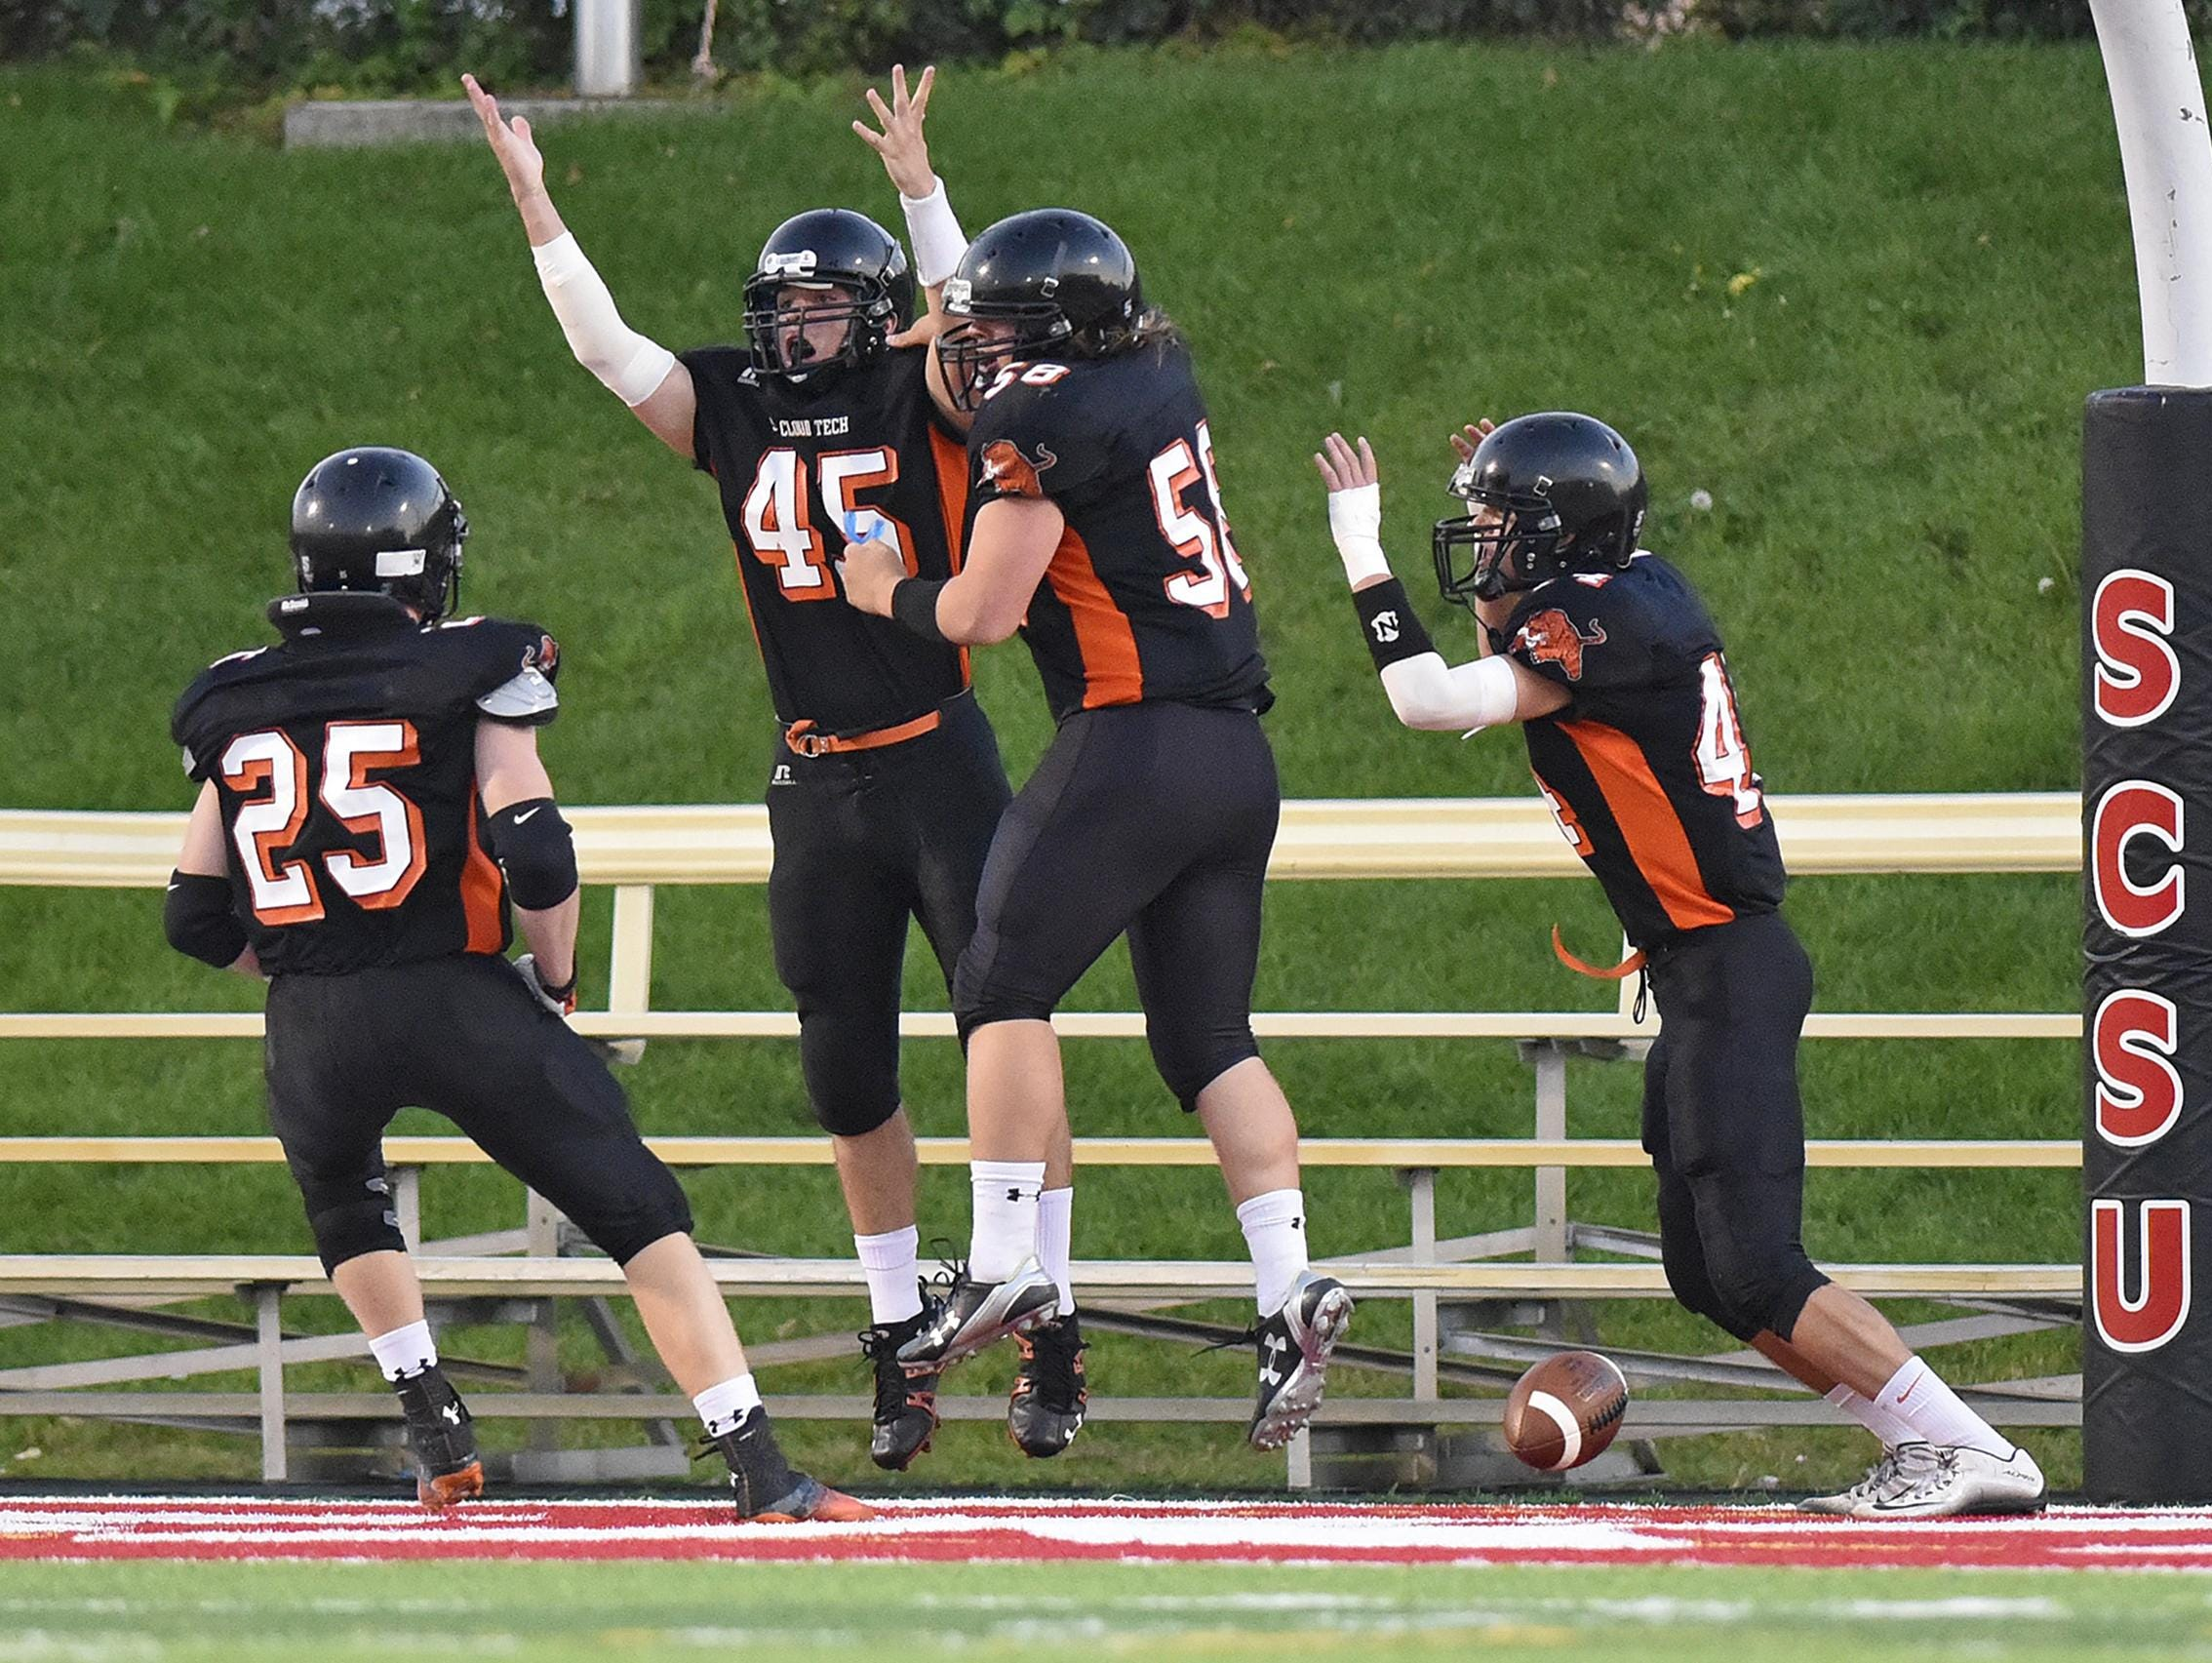 St. Cloud Tech players celebrate a touchdown during the first half of Friday's game at Husky Stadium in St. Cloud.